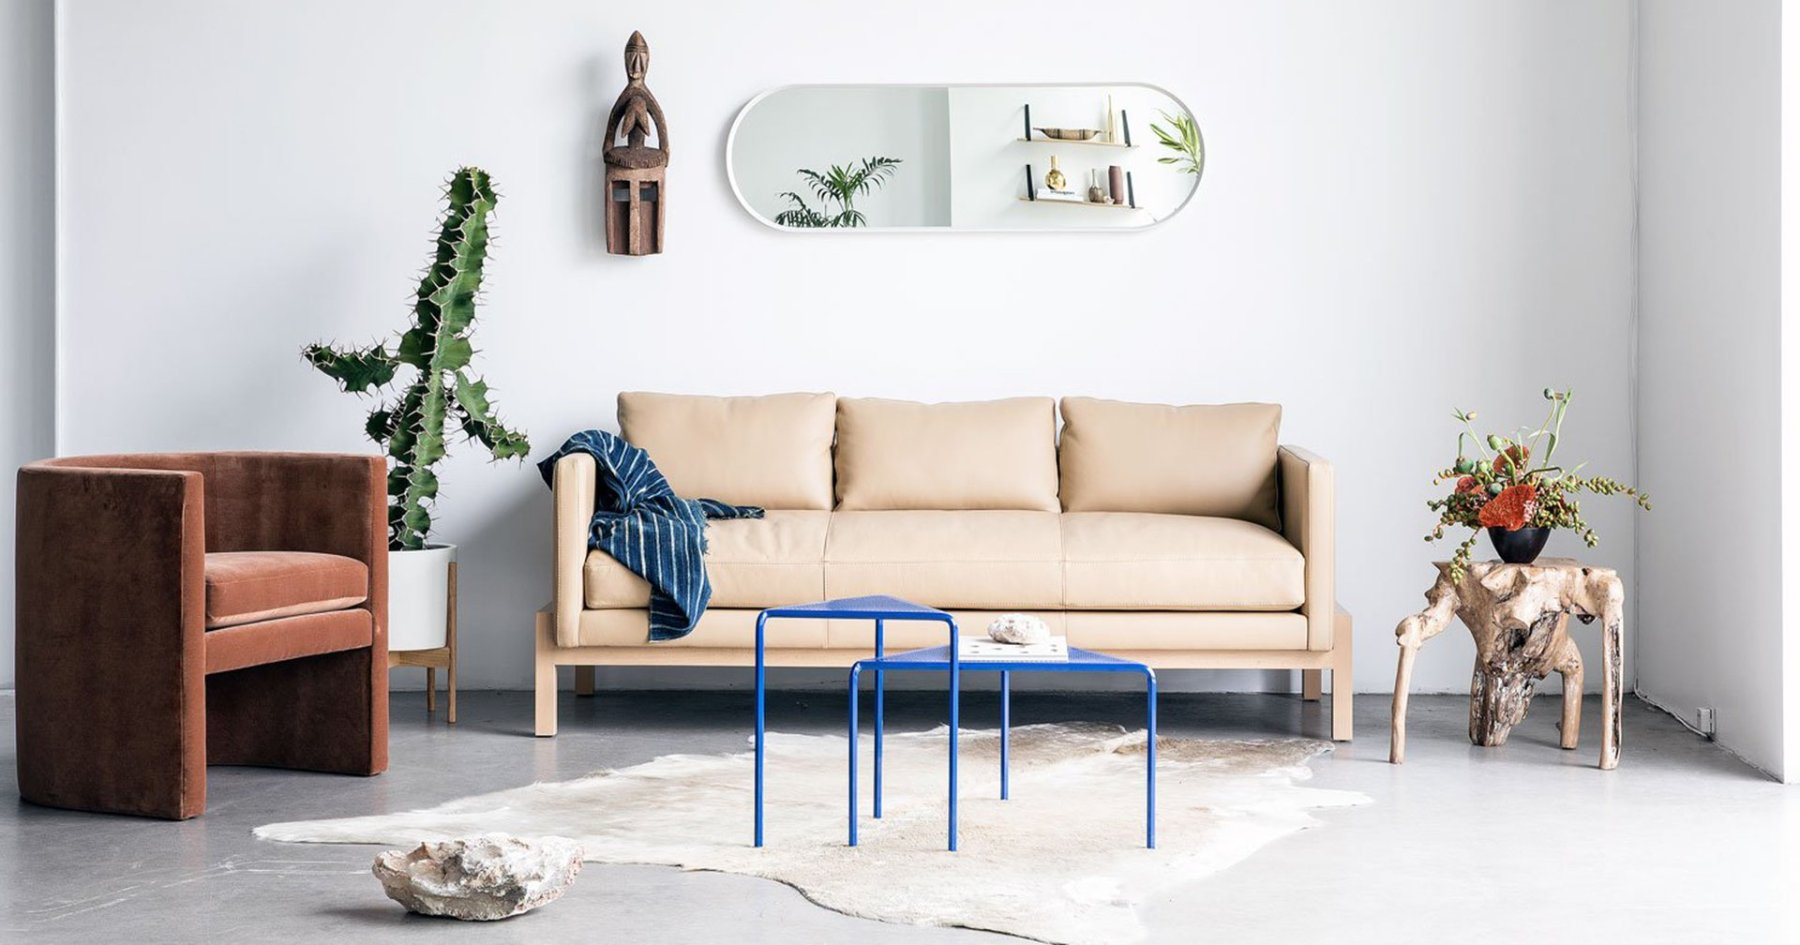 TRNK's LA Pop-Up Is a Great Place to Restock Your Living Room